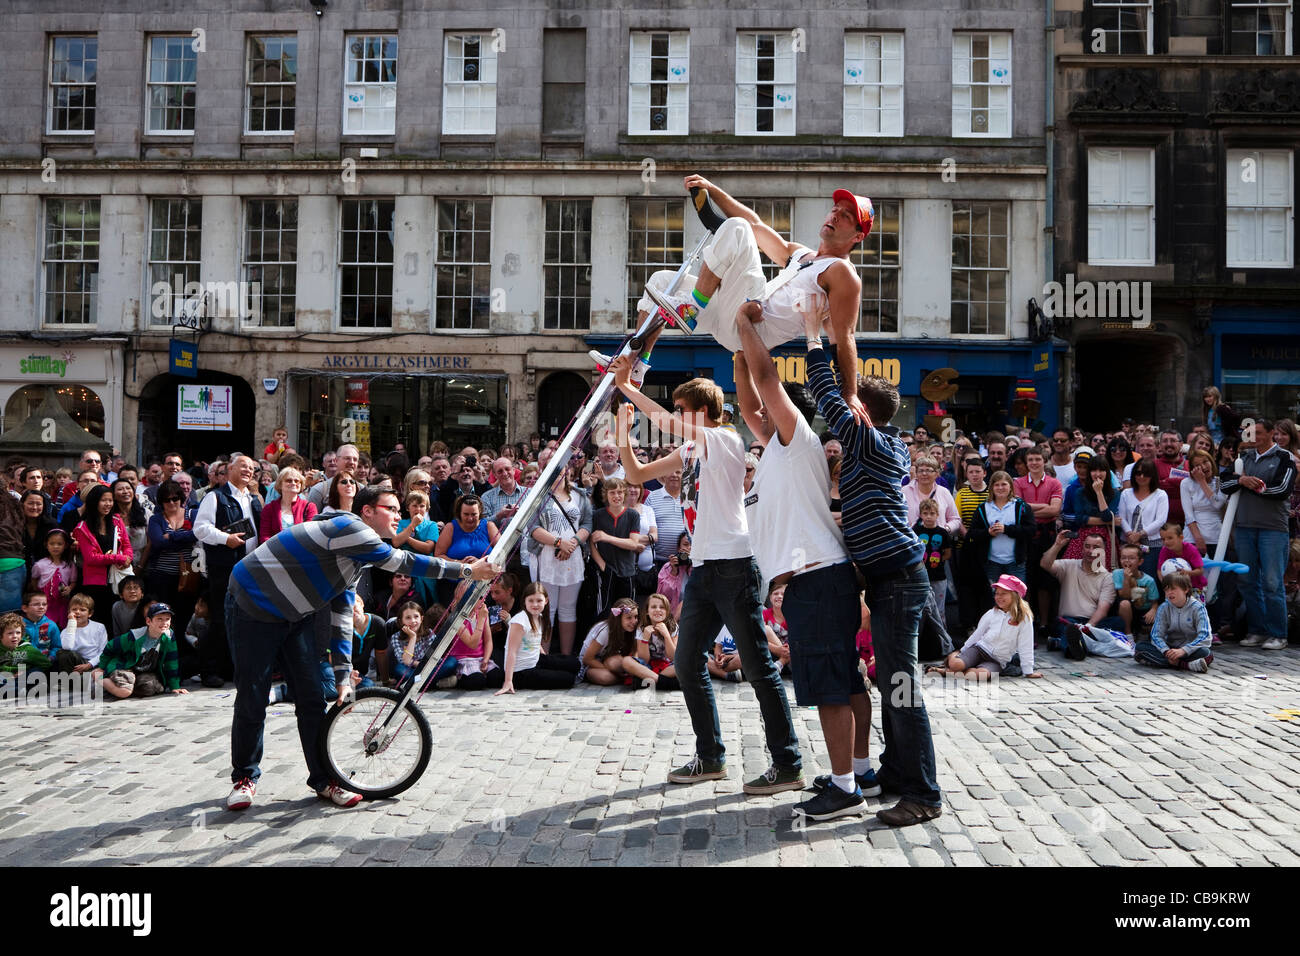 Street actor in High Street, Royal Mile, cycle Edinburgh at the Fringe festival - Stock Image